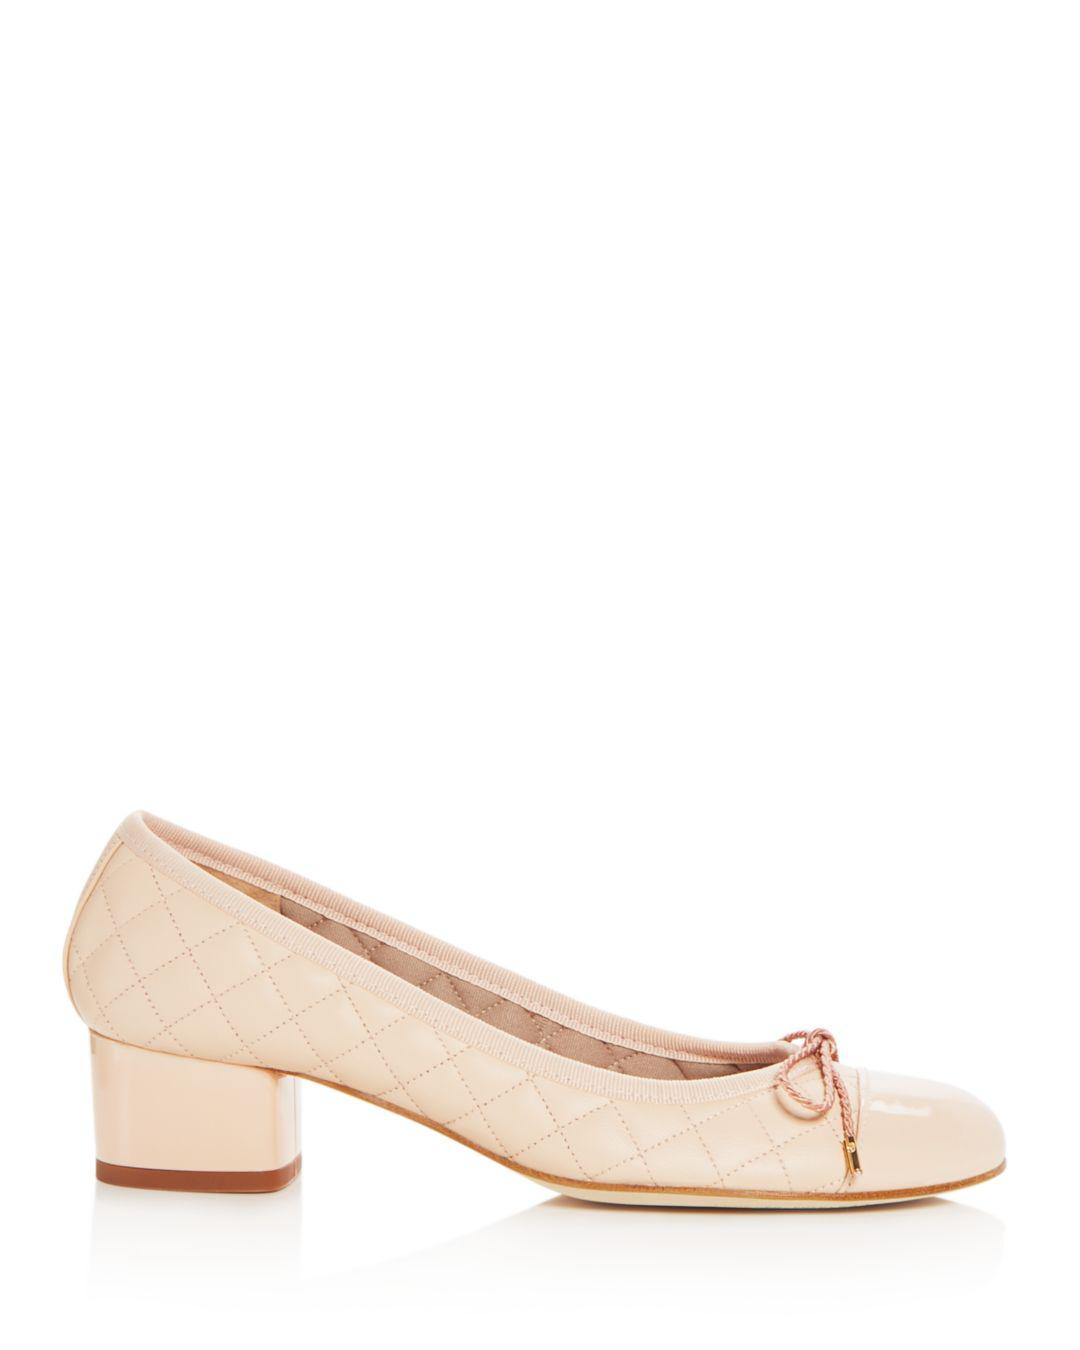 e9cce899858 Lyst - Paul Mayer Women s Titou Quilted Leather Block-heel Pumps in Natural